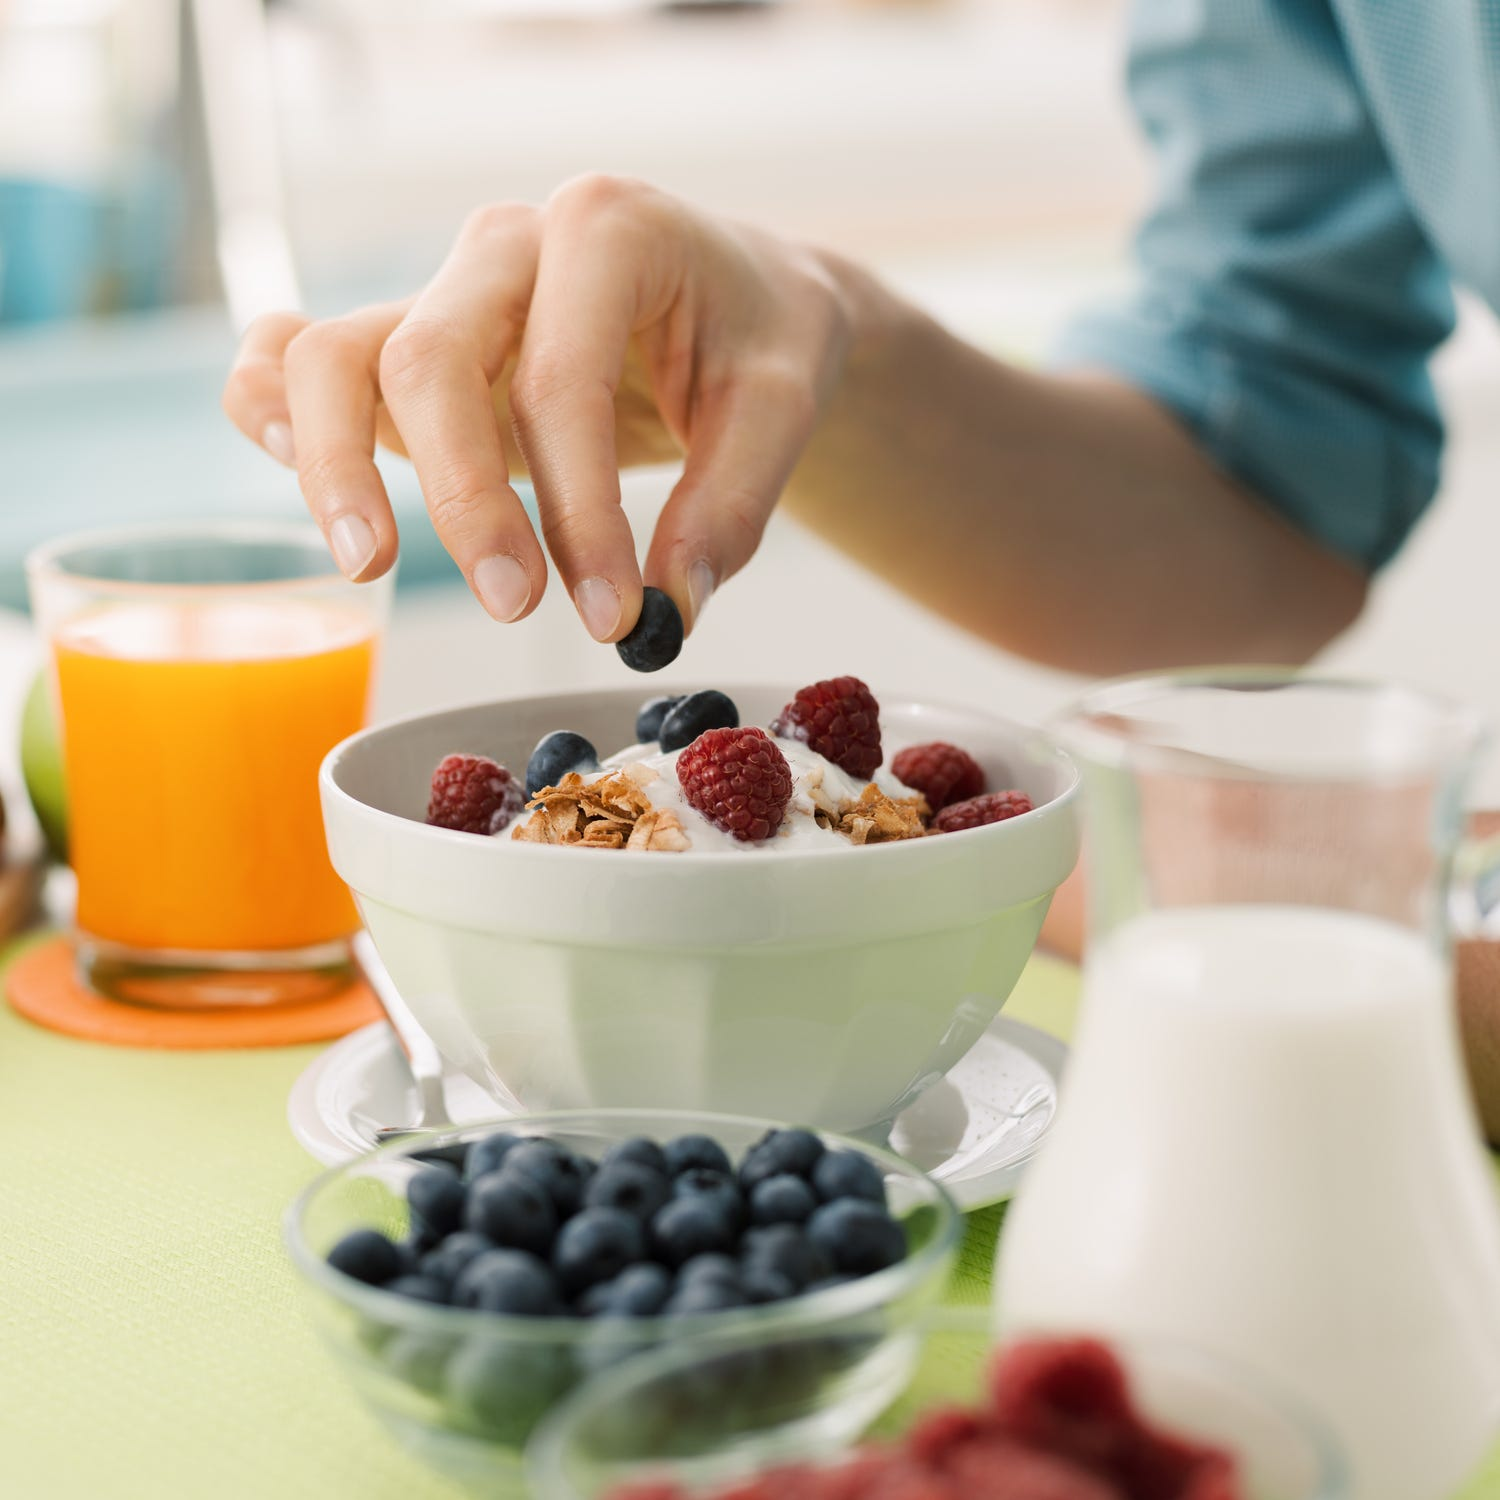 Eating breakfast? Skipping morning meal has higher risk of heart-related death, study says